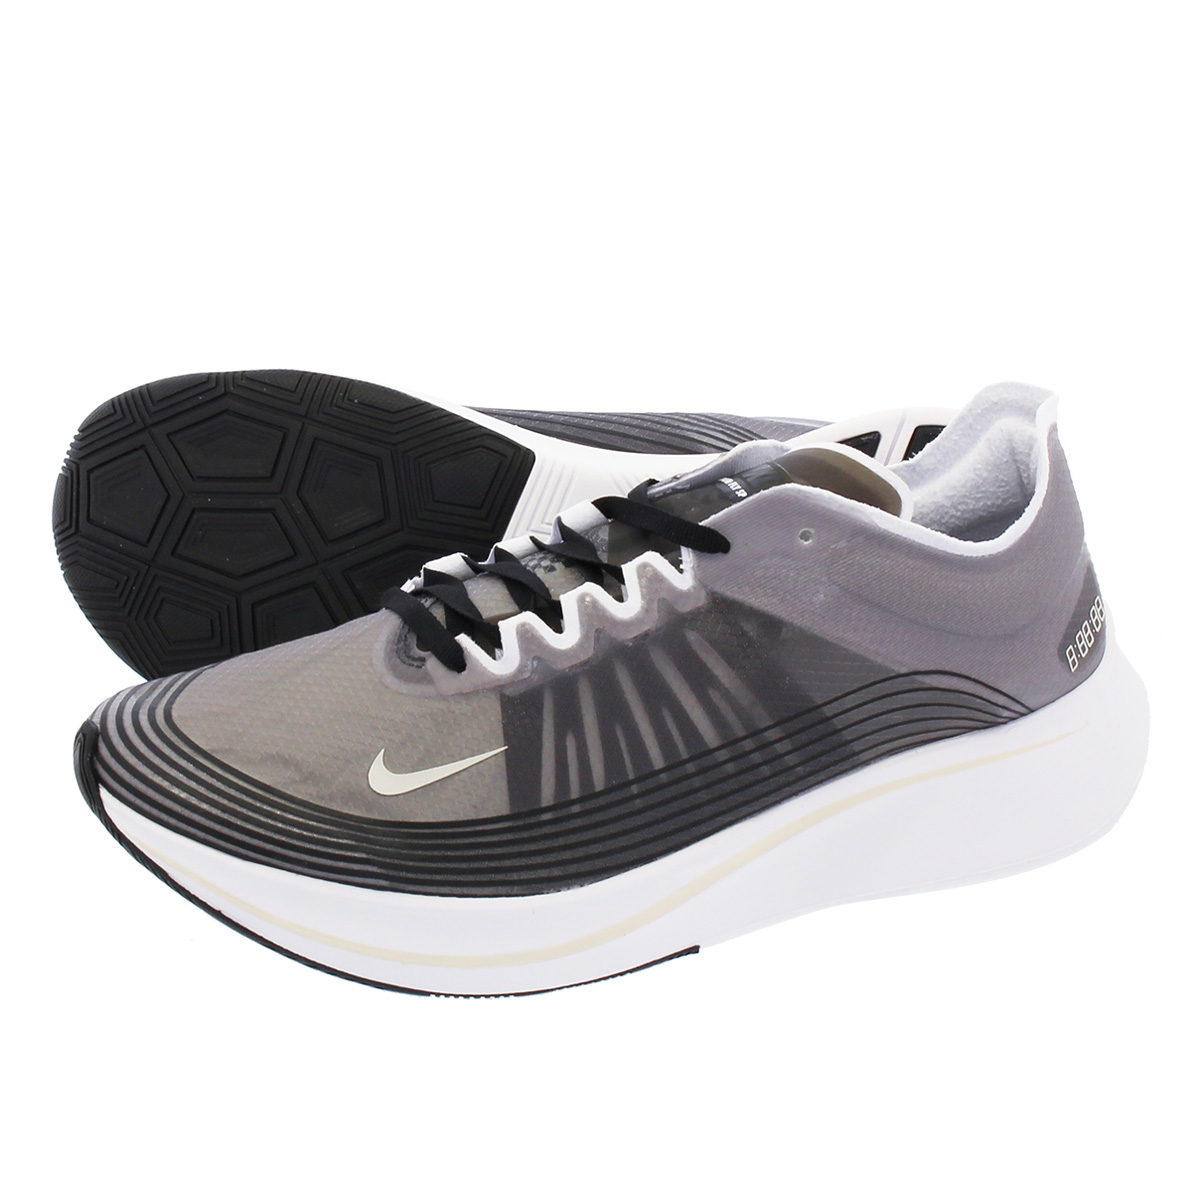 11f65a5cece LOWTEX PLUS  NIKE ZOOM FLY SP Nike zoom fly SP WHITE RAGE GREEN SUMMIT  WHITE aj9282-001